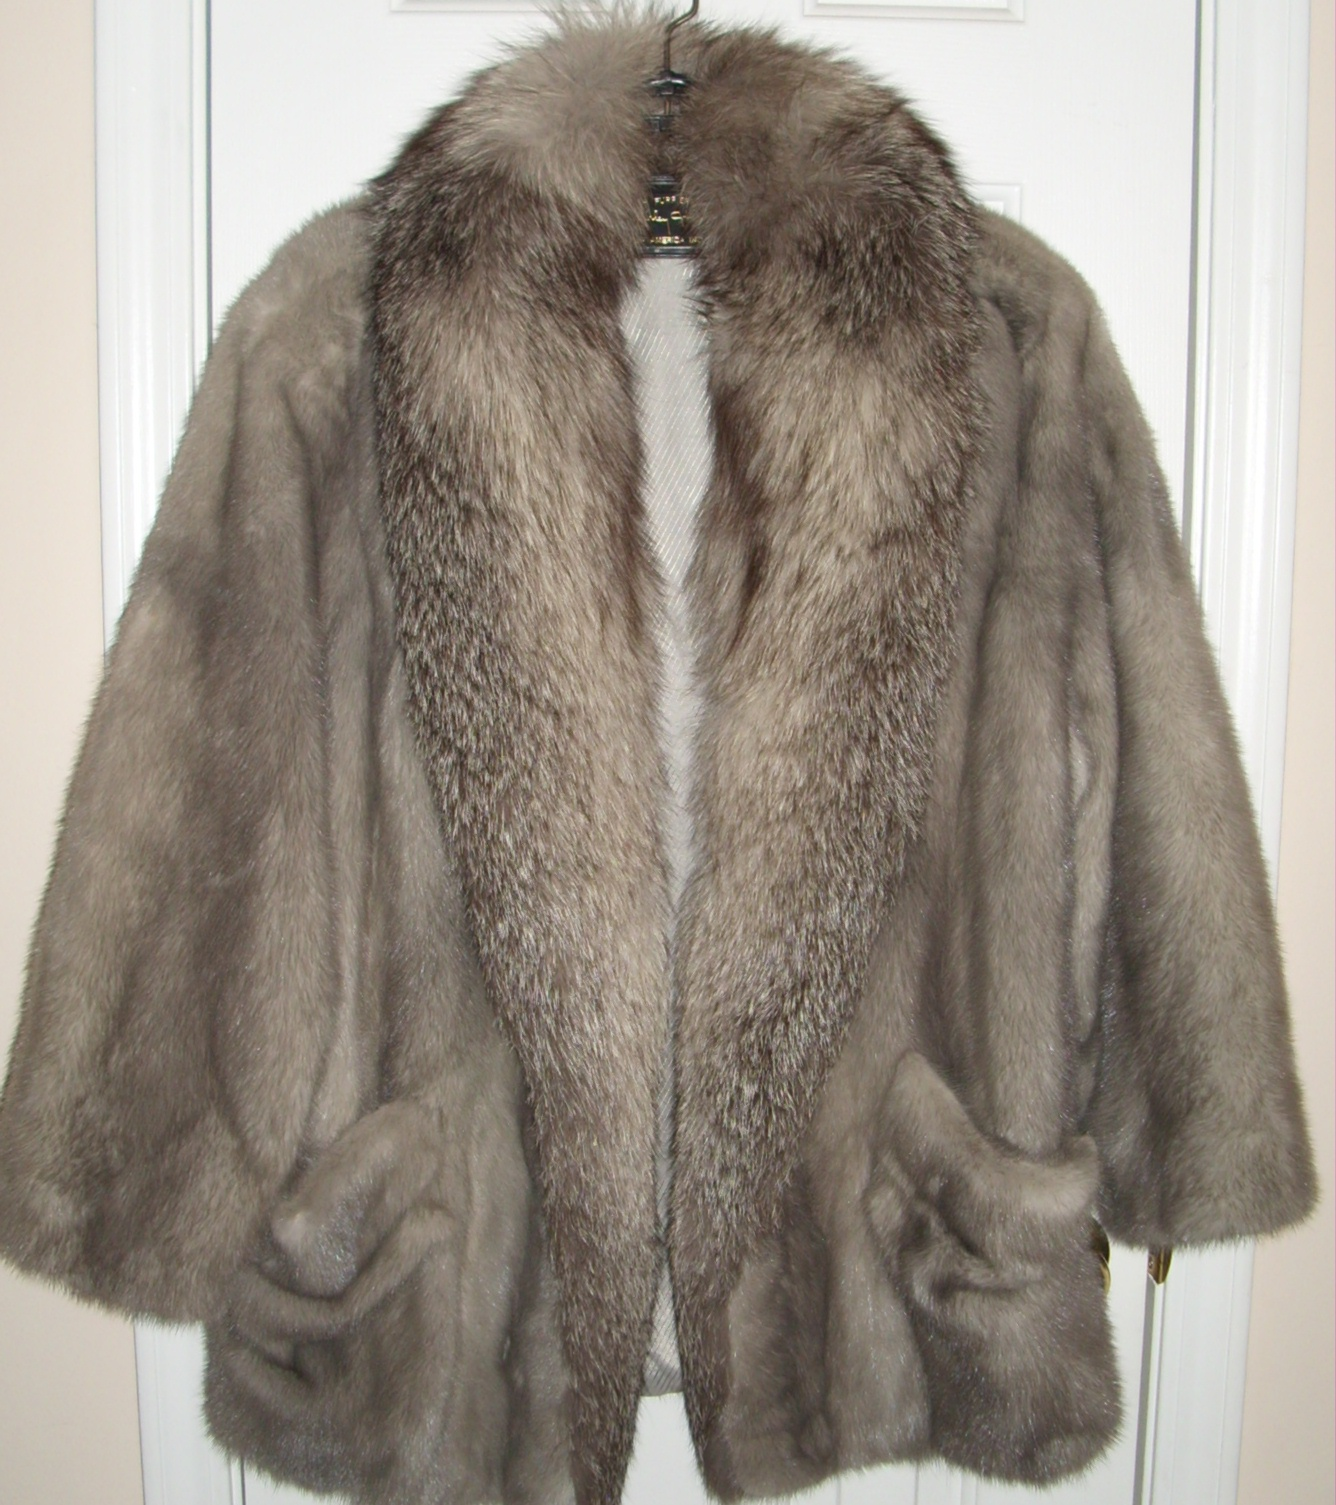 eBay Selling Coach: Vintage Mink Coat - Is it Real or Fake?